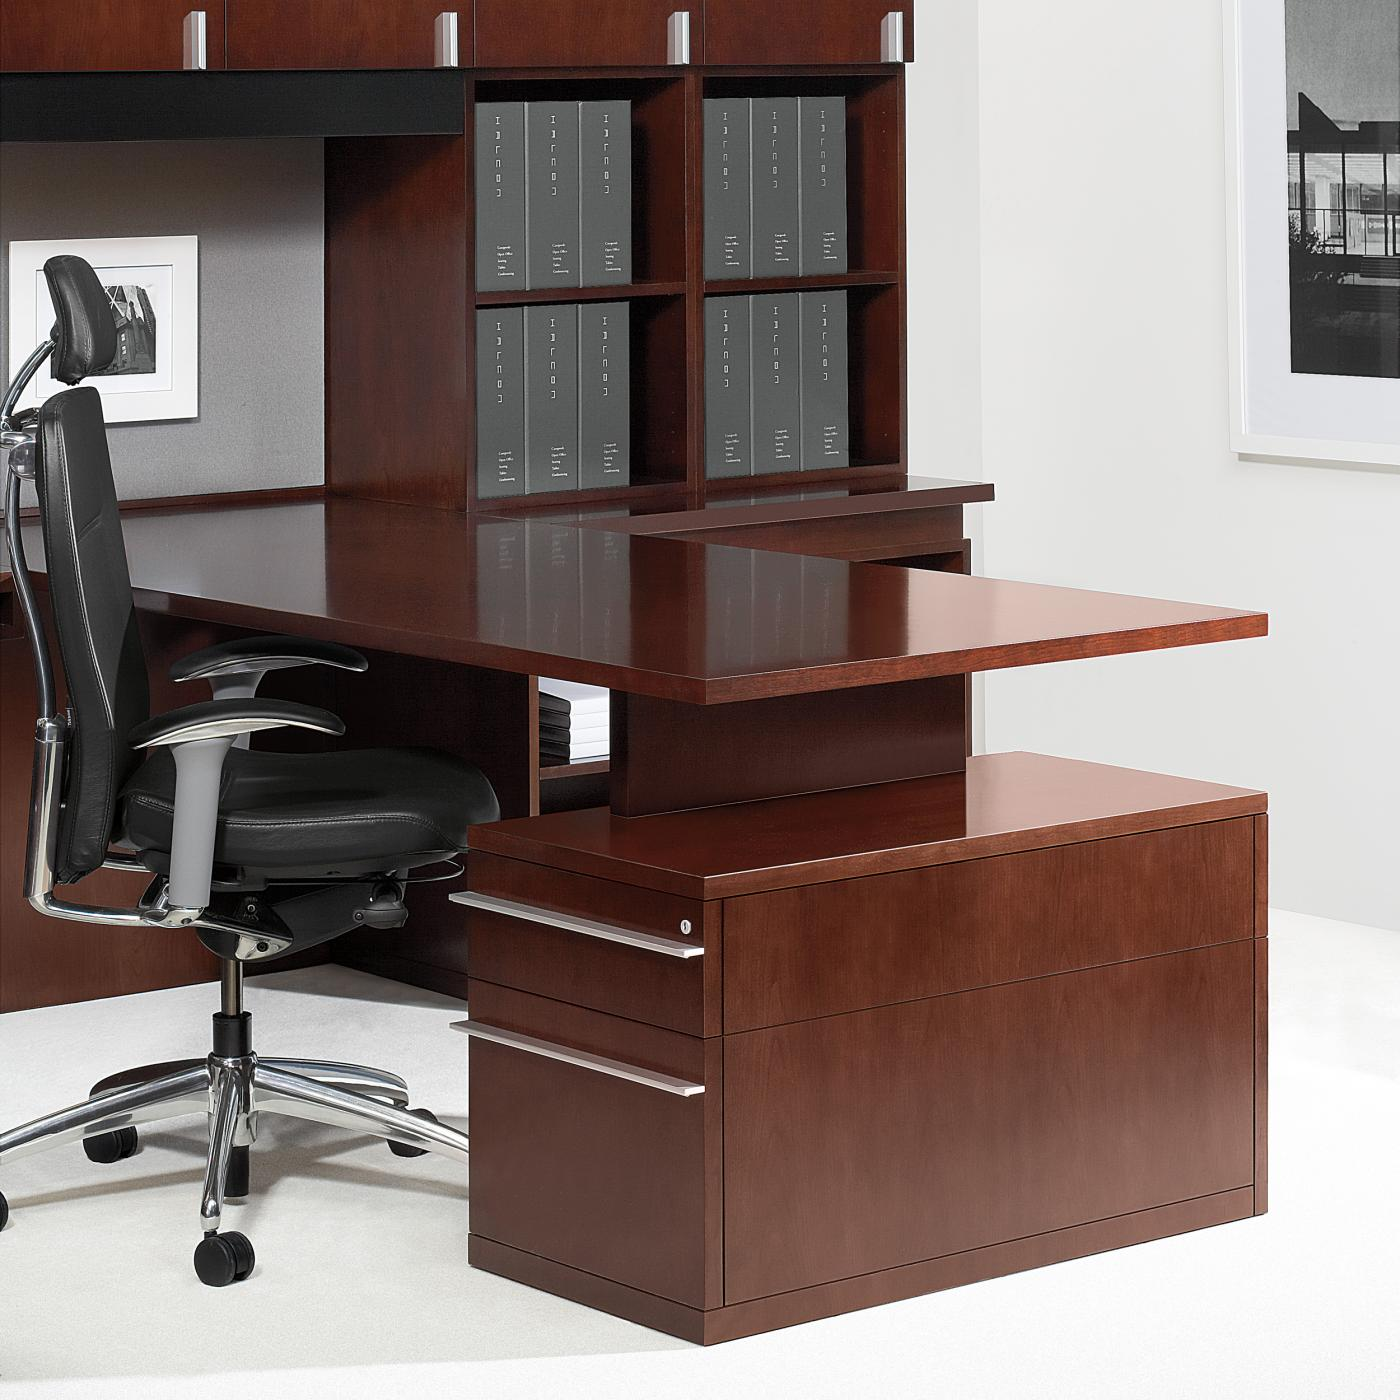 Desk worksurfaces float above casework, supported by a vertical fin.